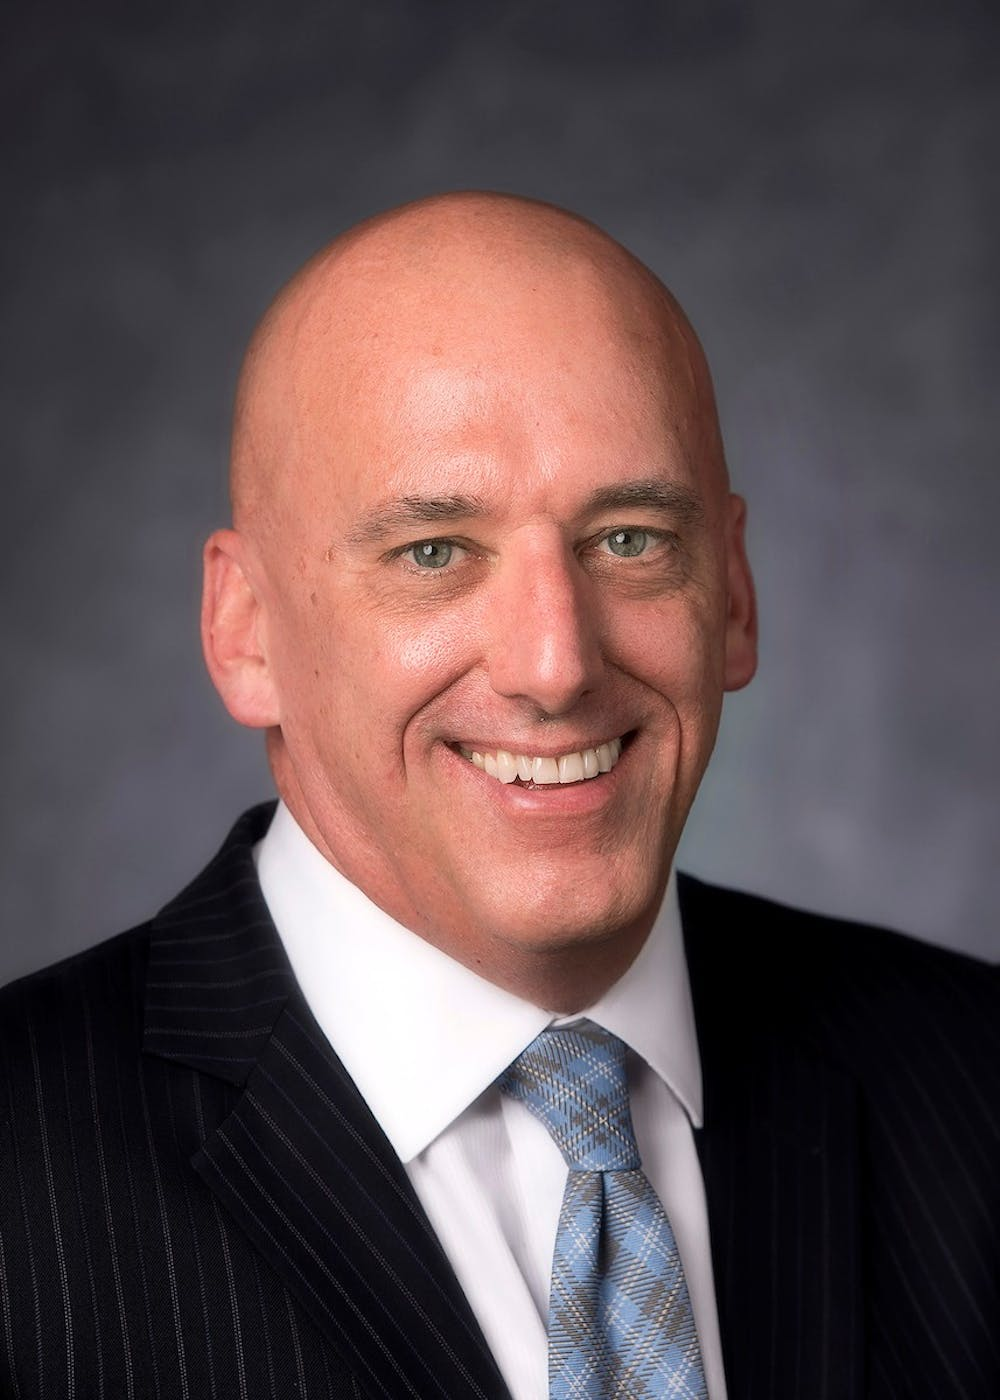 <p>Joel Curran is the Vice Chancellor for Communications at UNC. His last day with the University will be Oct. 8.&nbsp;</p>